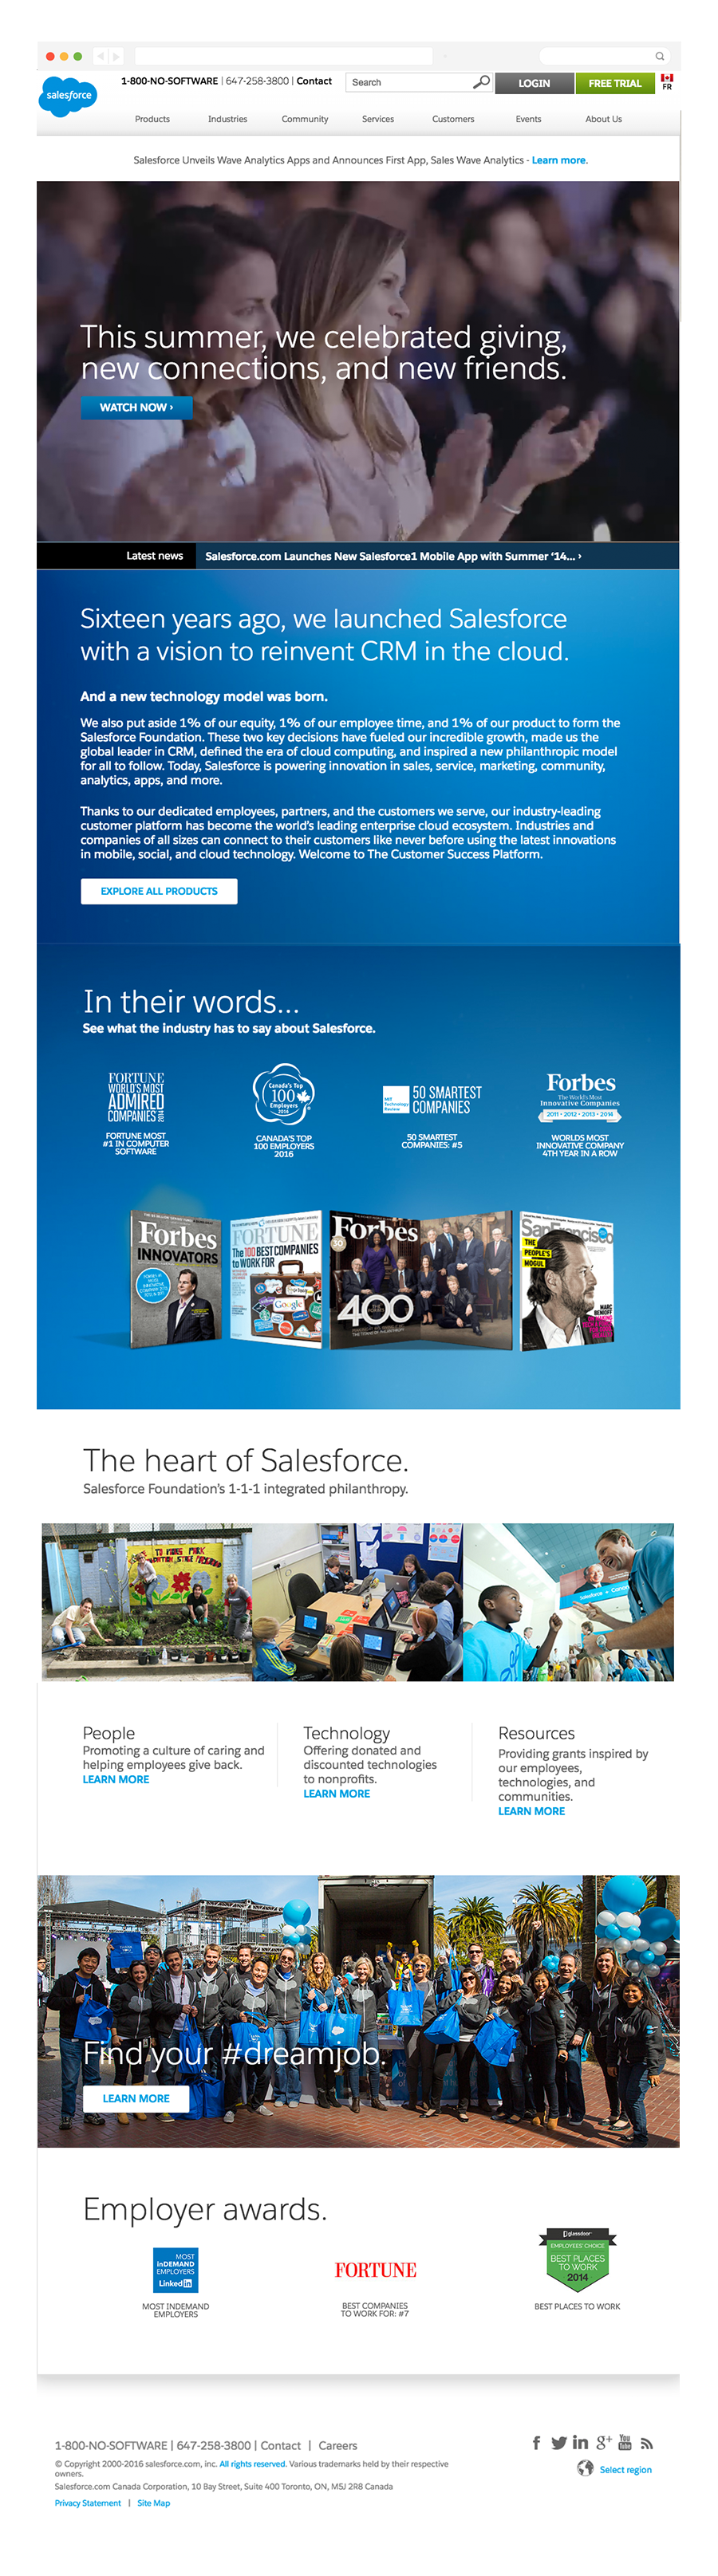 Salesforce About Us page